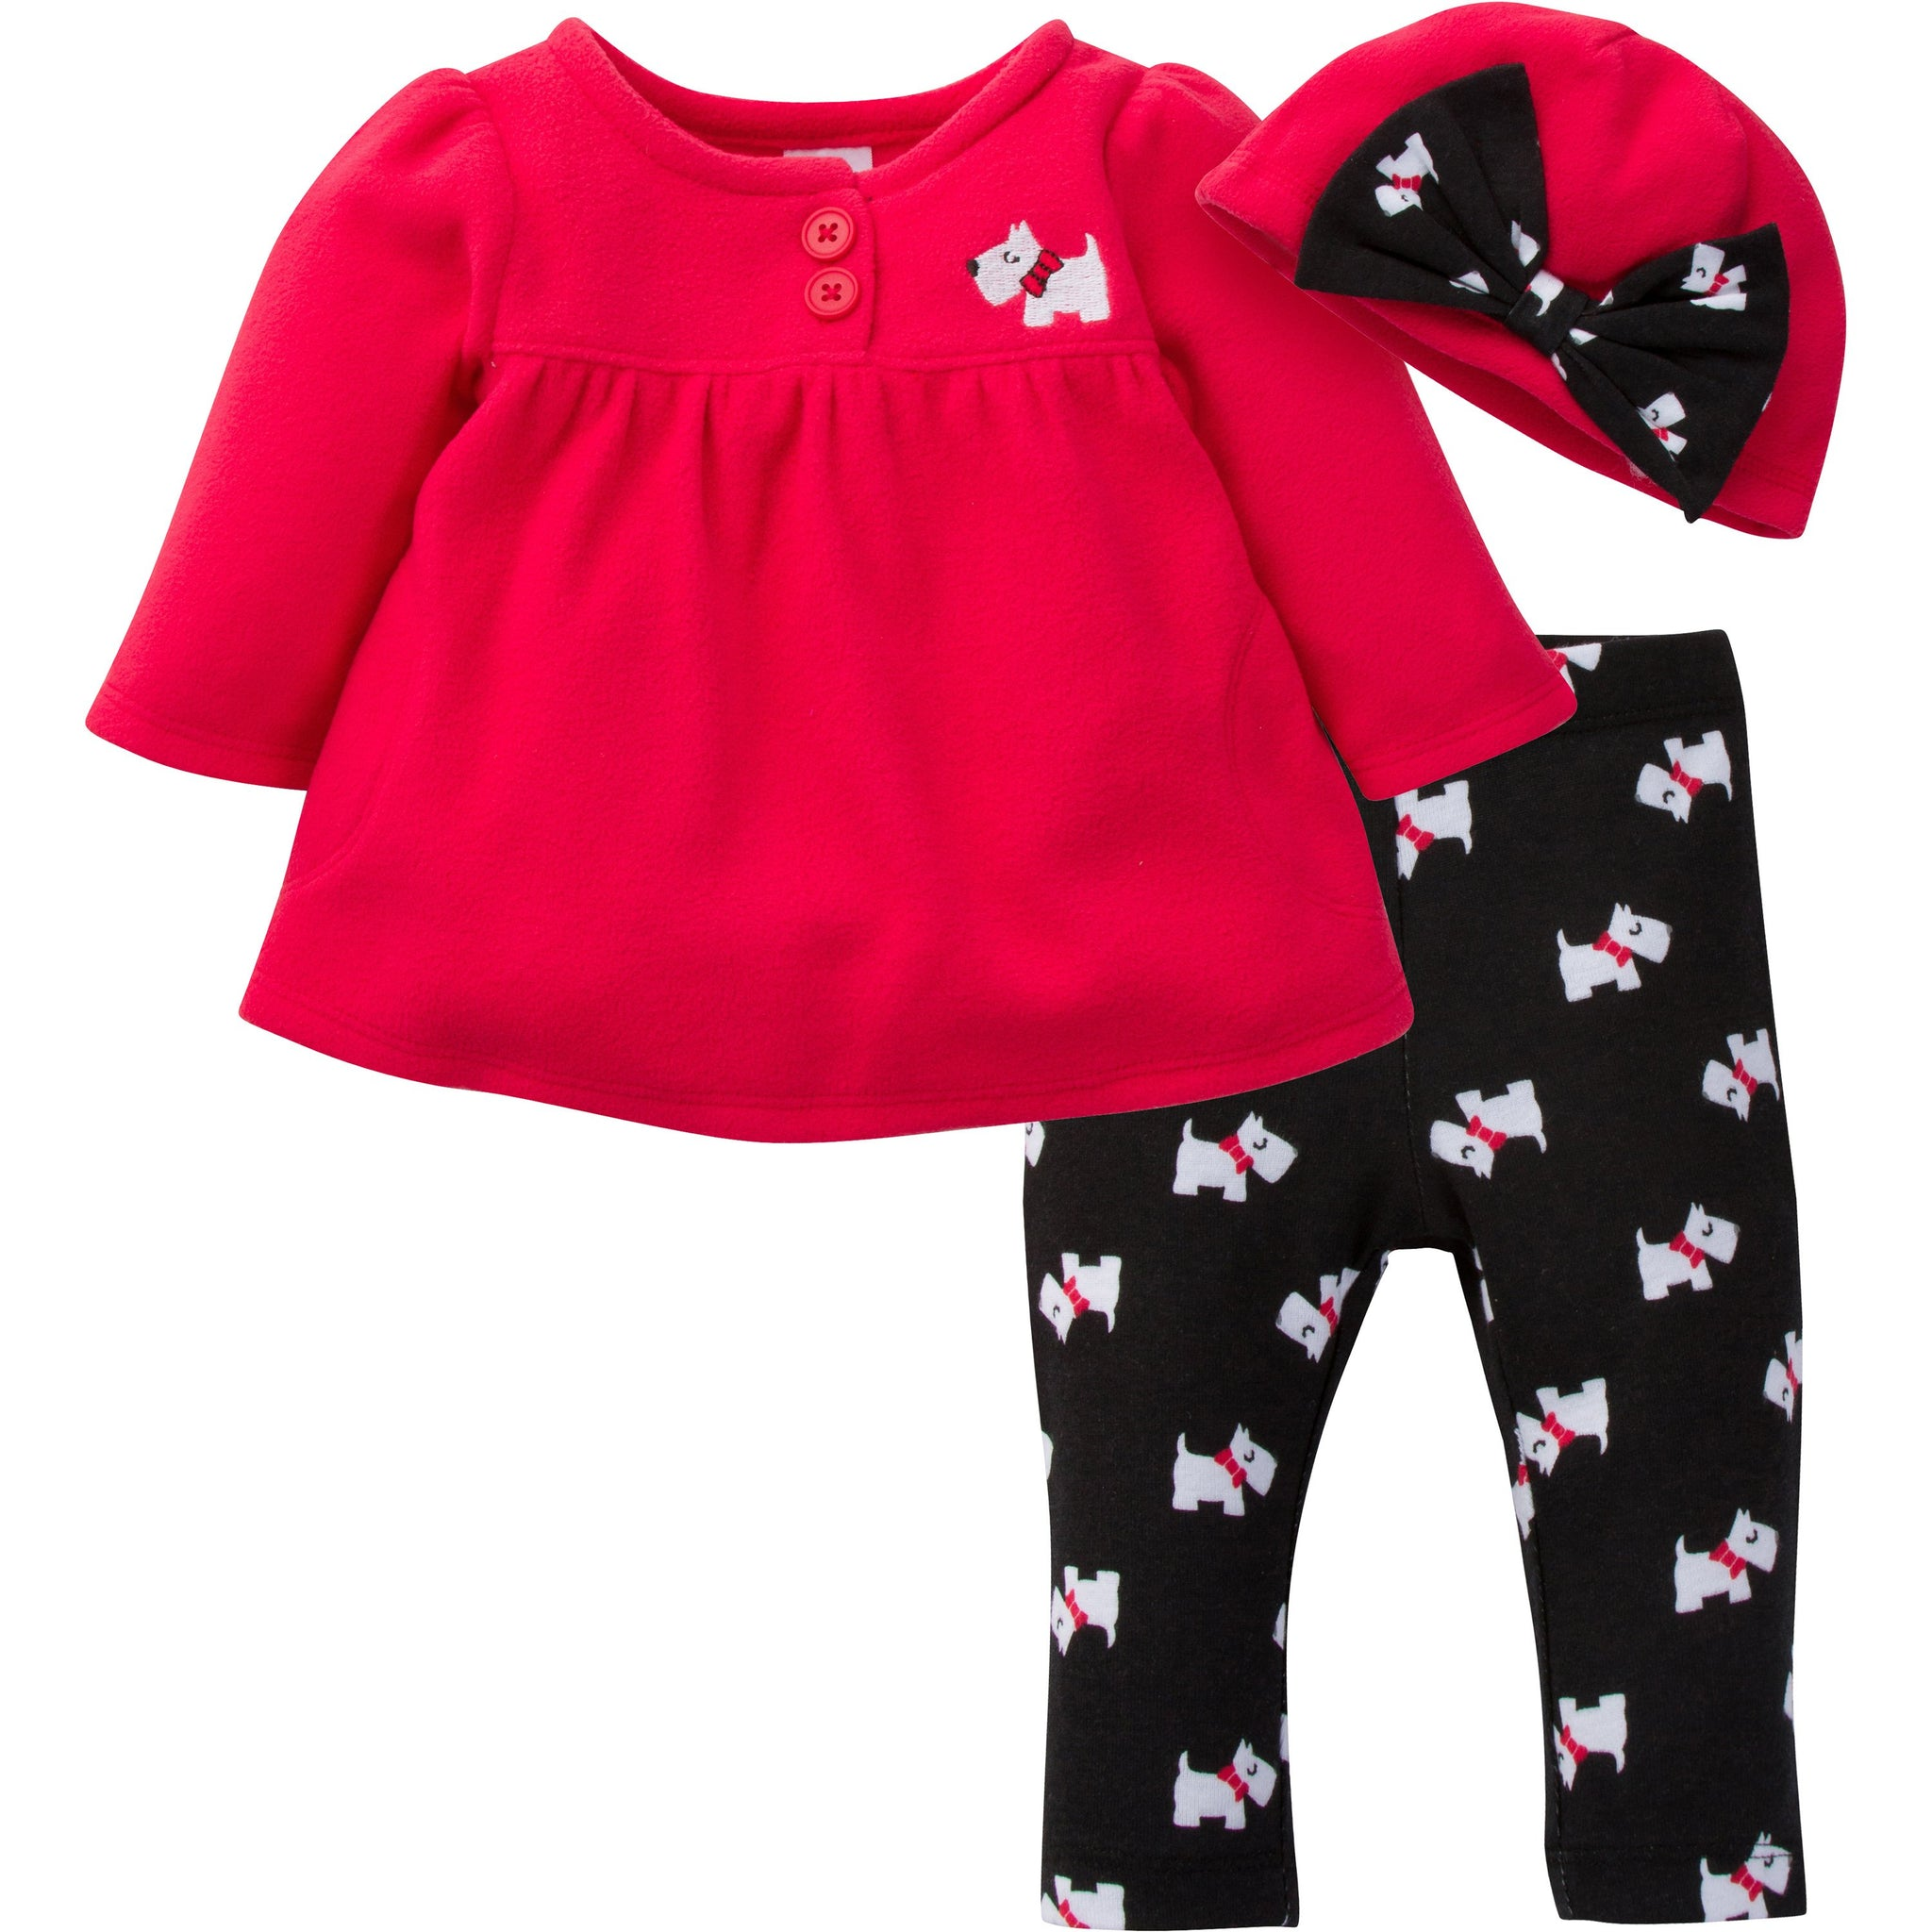 Gerber Baby 3 Piece Micro Fleece Top, Pant and Cap Set, Scottie Dog